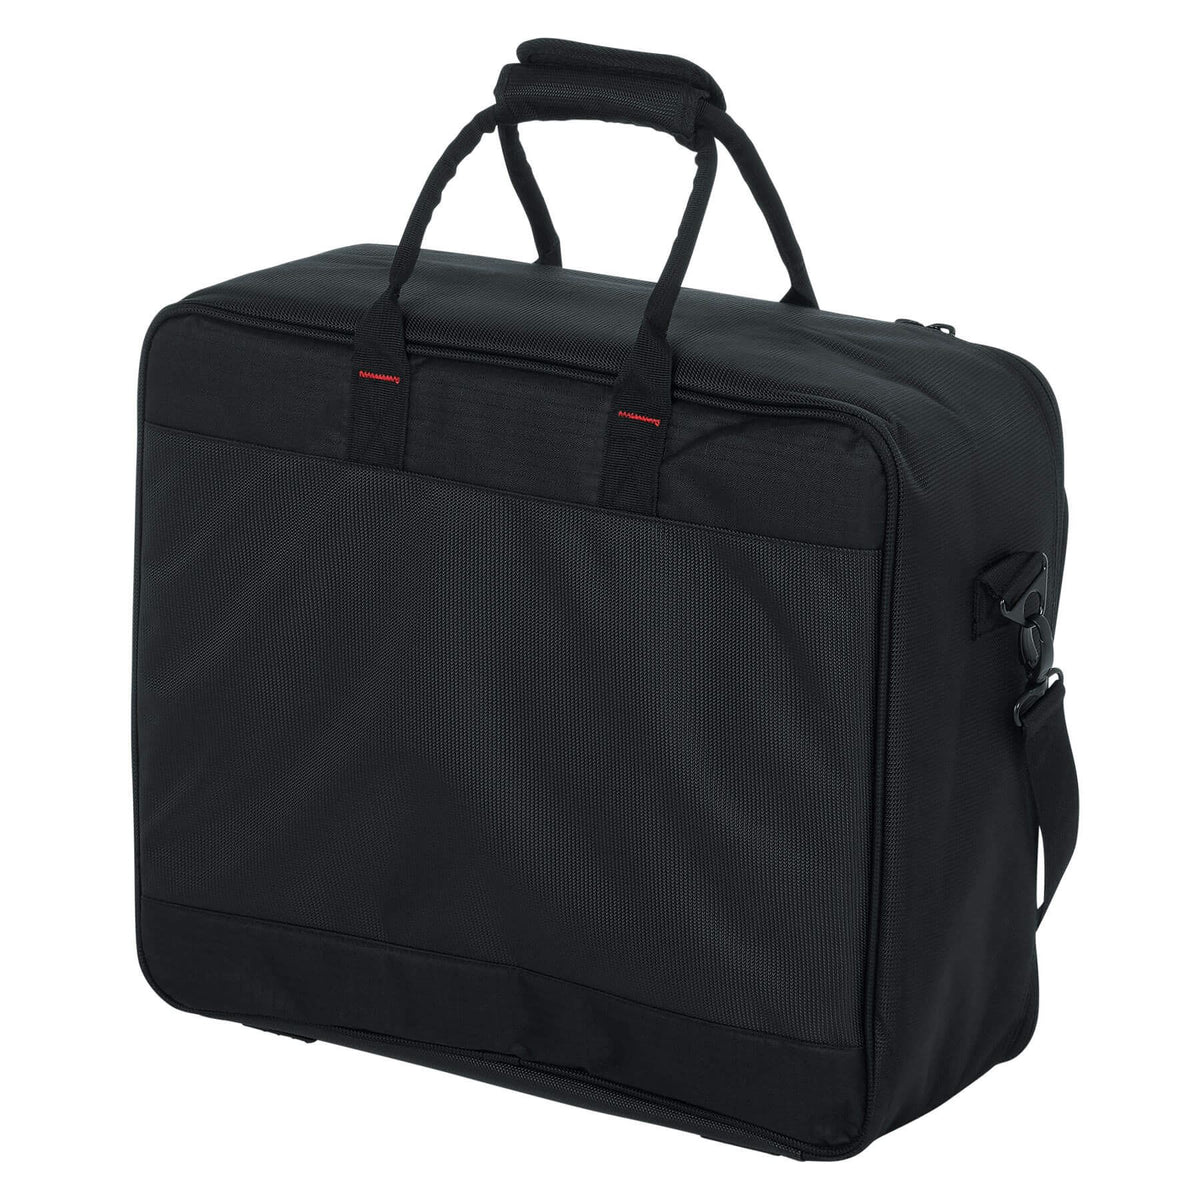 "Gator Cases G-MIXERBAG-1815 Padded Nylon Mixer/Equipment Bag 18"" X 15"" X 6.5"""